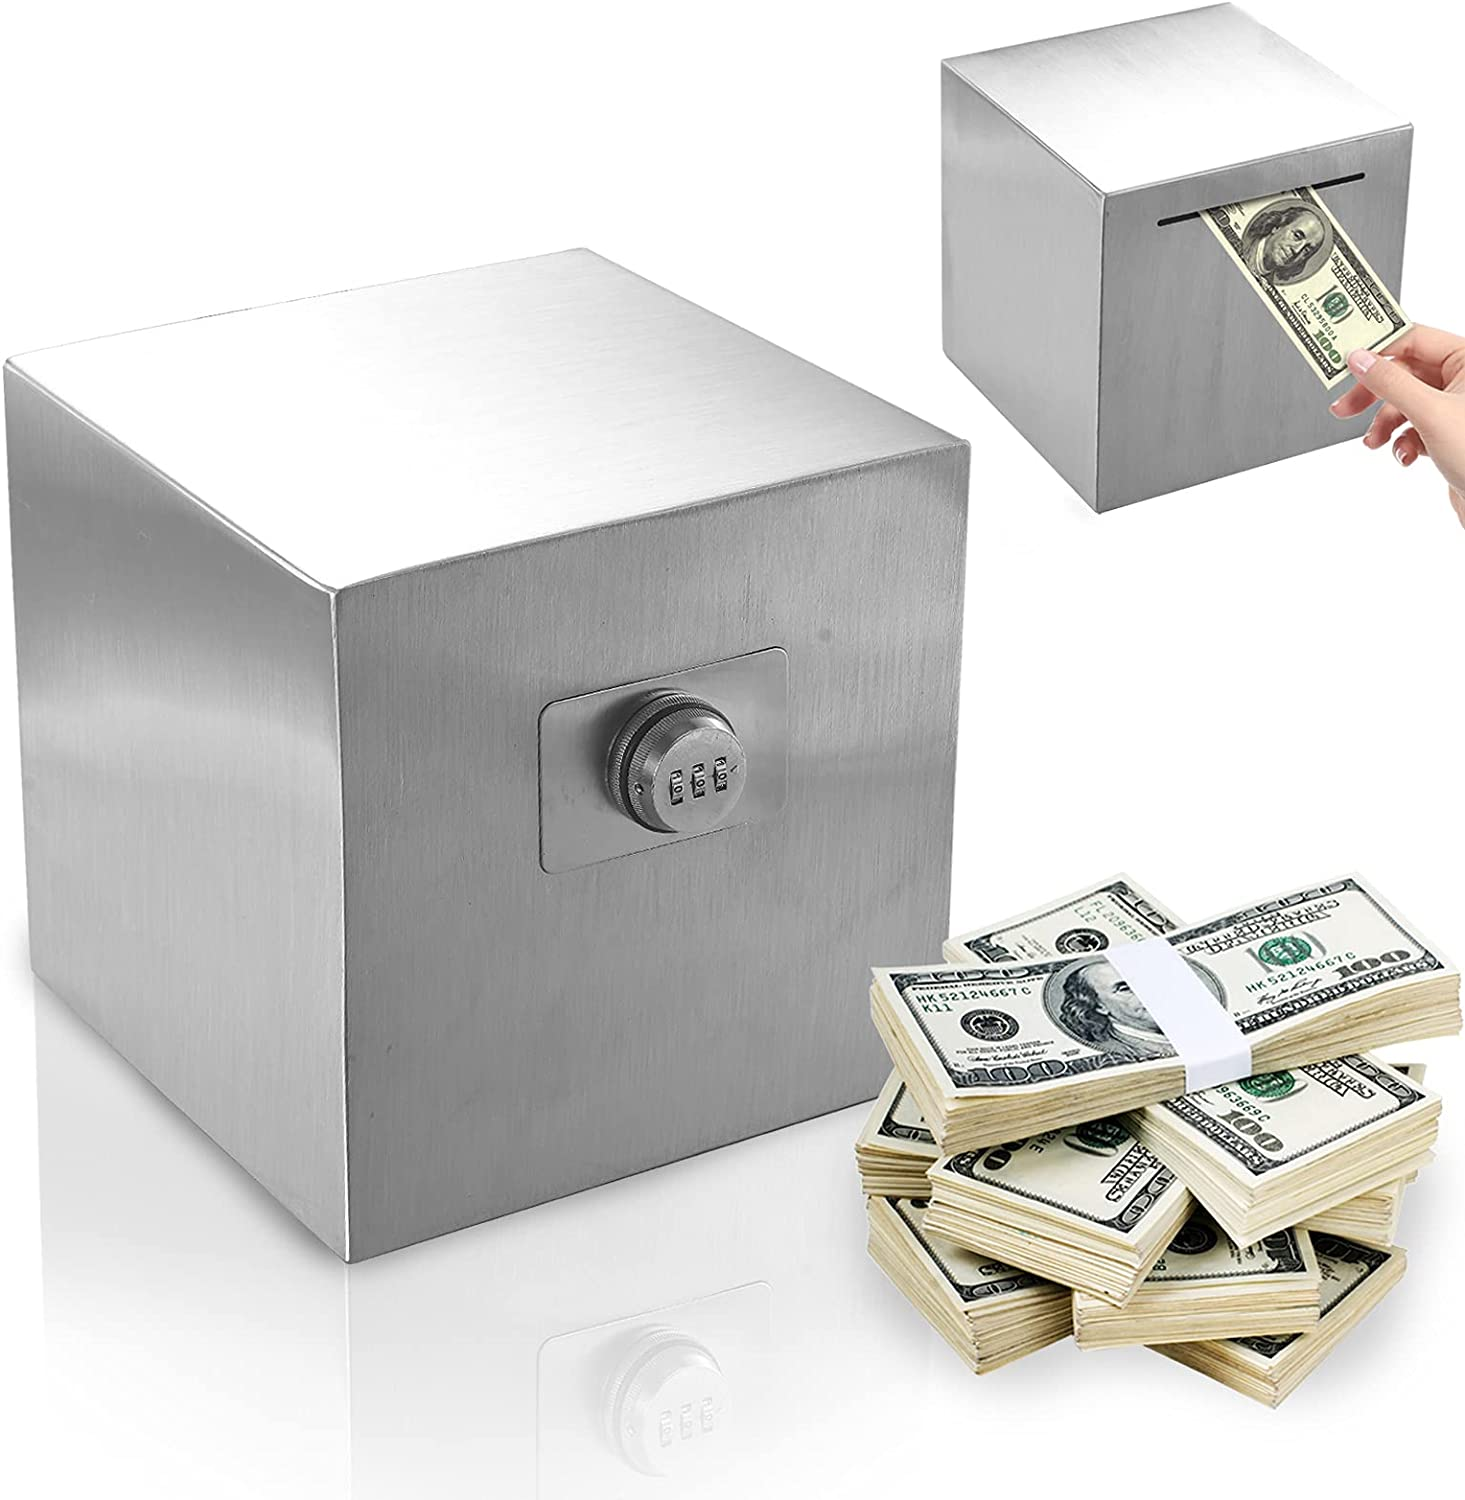 necaces Piggy Bank Large Adults 4 years warranty Stainless Steel Outlet sale feature for